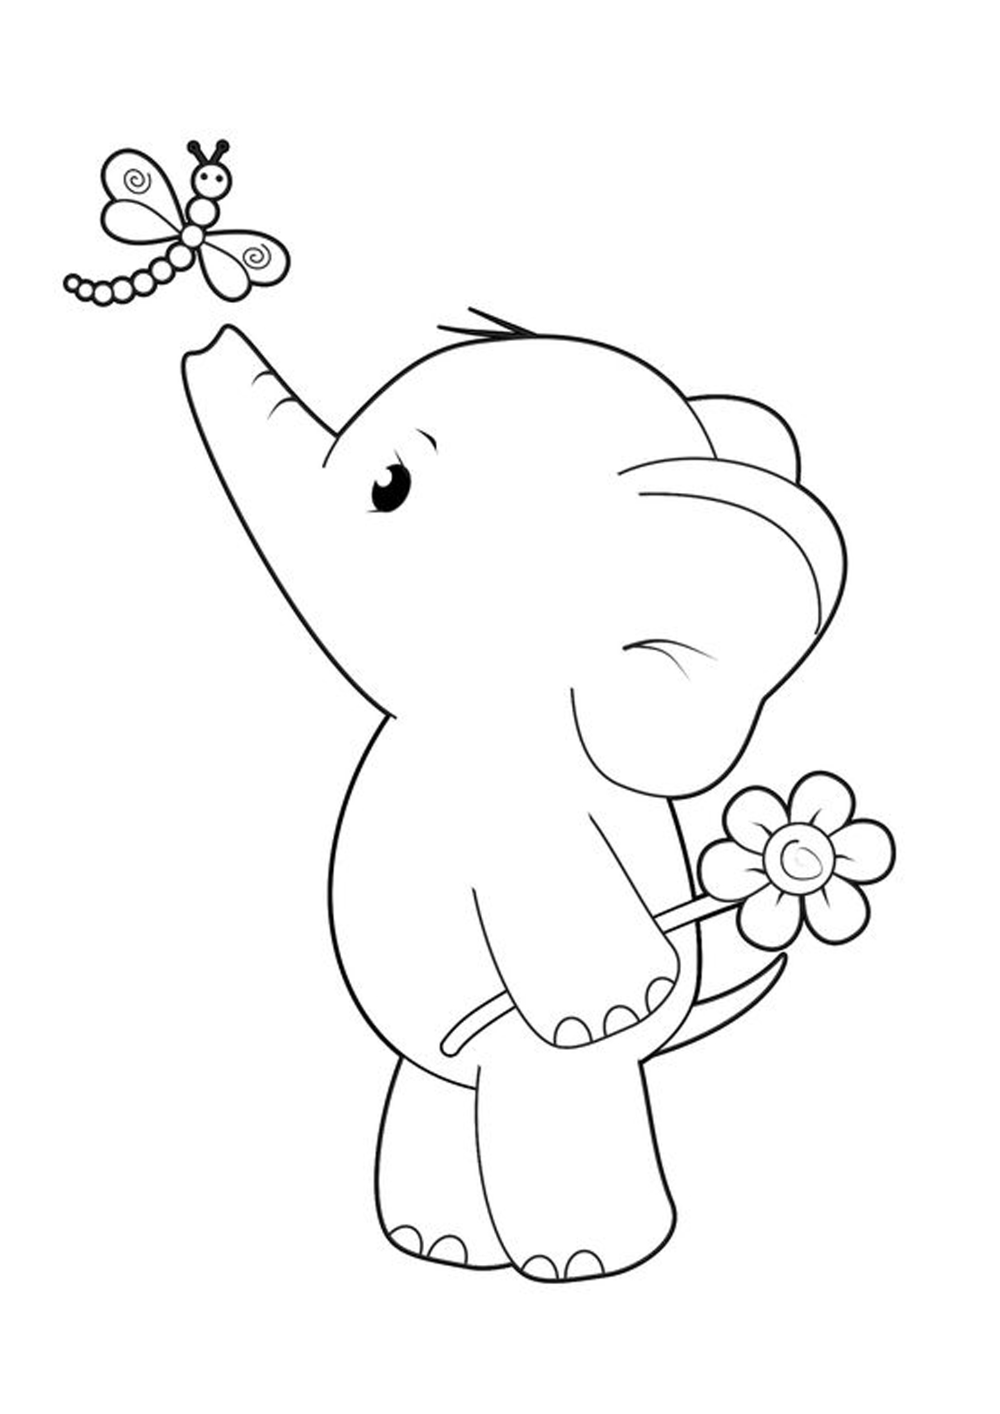 Free Easy To Print Elephant Coloring Pages Elephant Coloring Page Puppy Coloring Pages Cute Coloring Pages